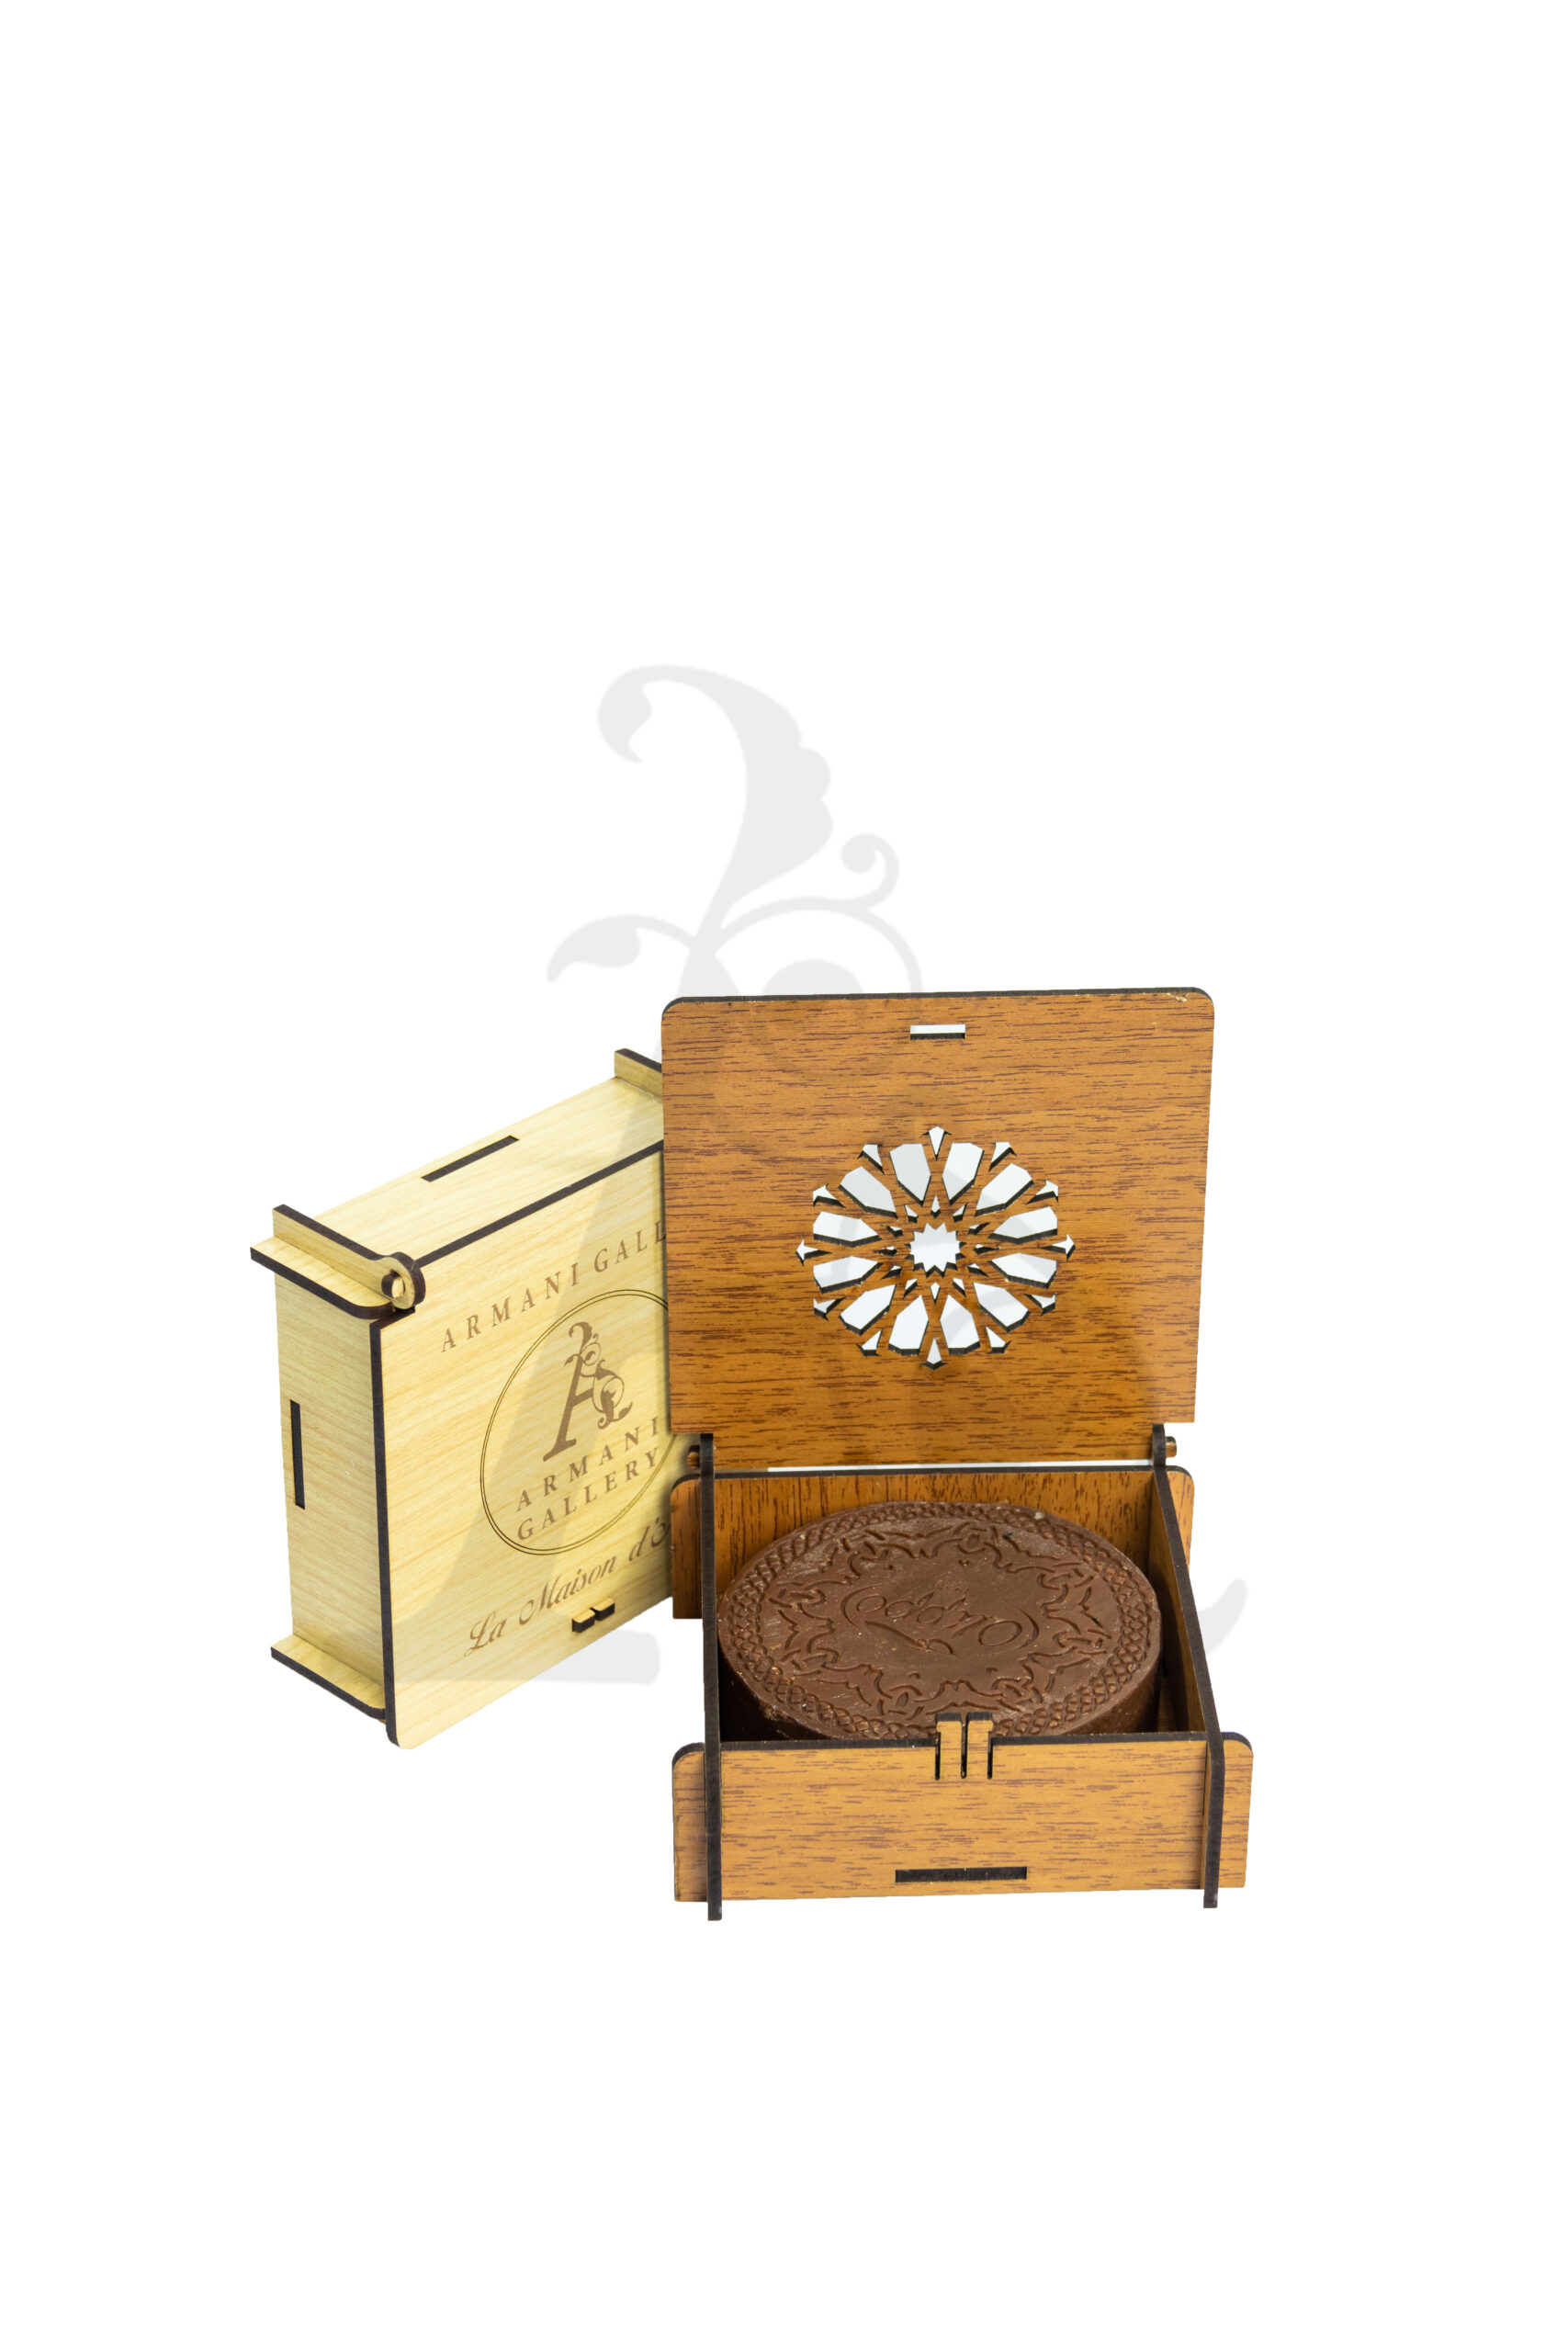 Buy La Maison Natural Soap with Wooden Box - 1 Piece (Brown)